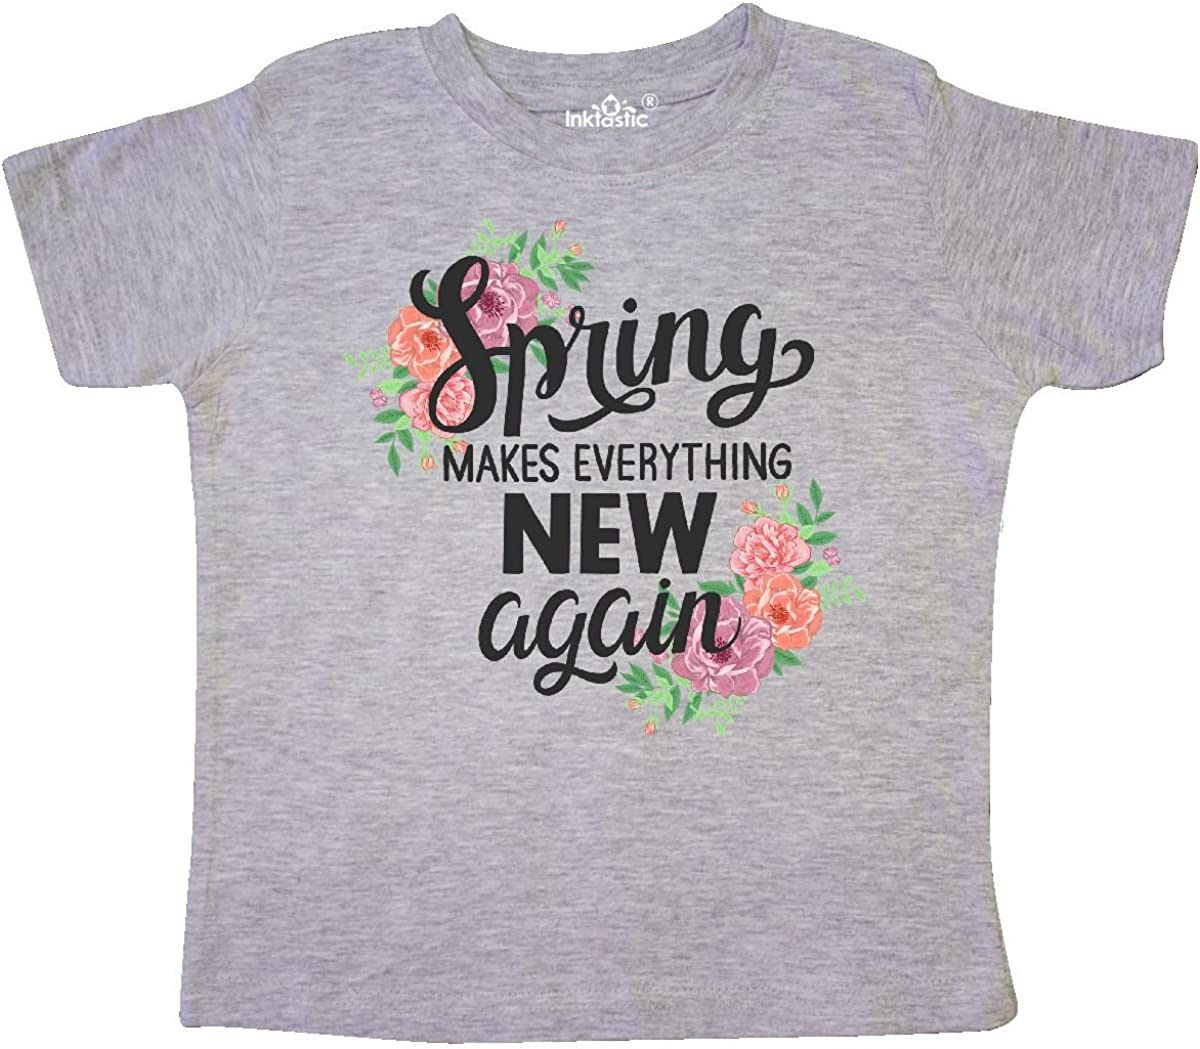 inktastic Spring Makes Everything New Again Hand Lettering Toddler T-Shirt